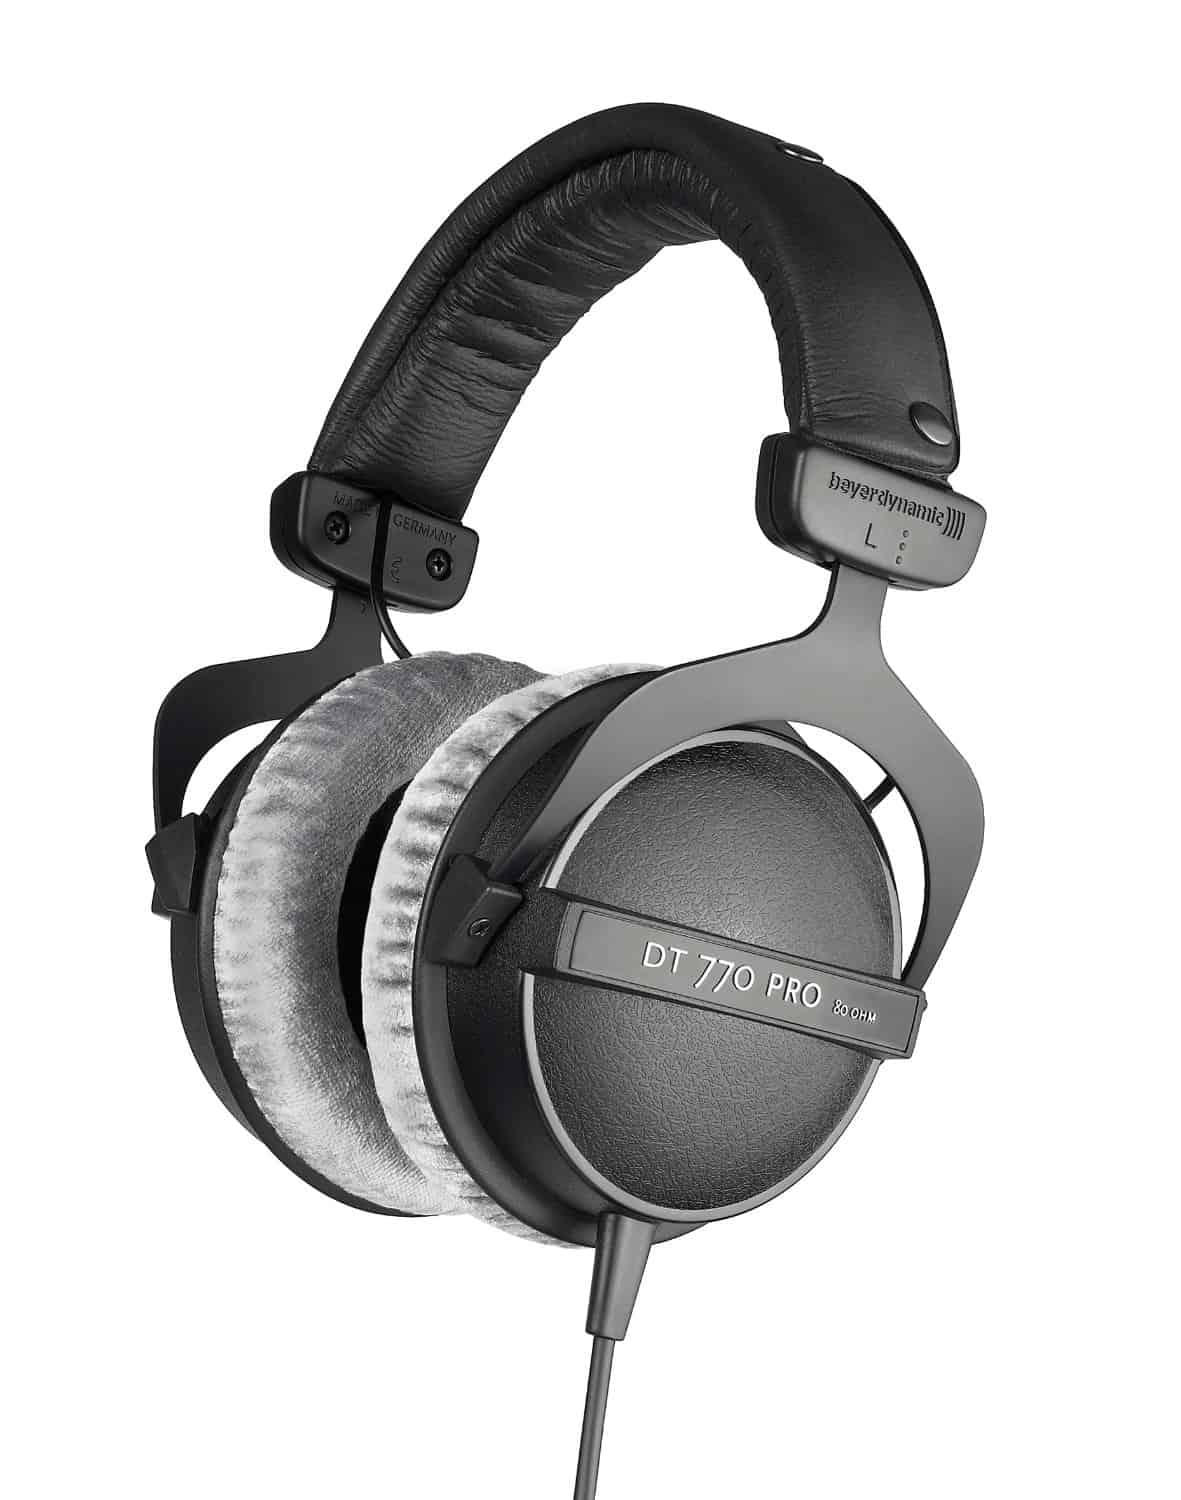 ​Best DJ Headphones For The Price